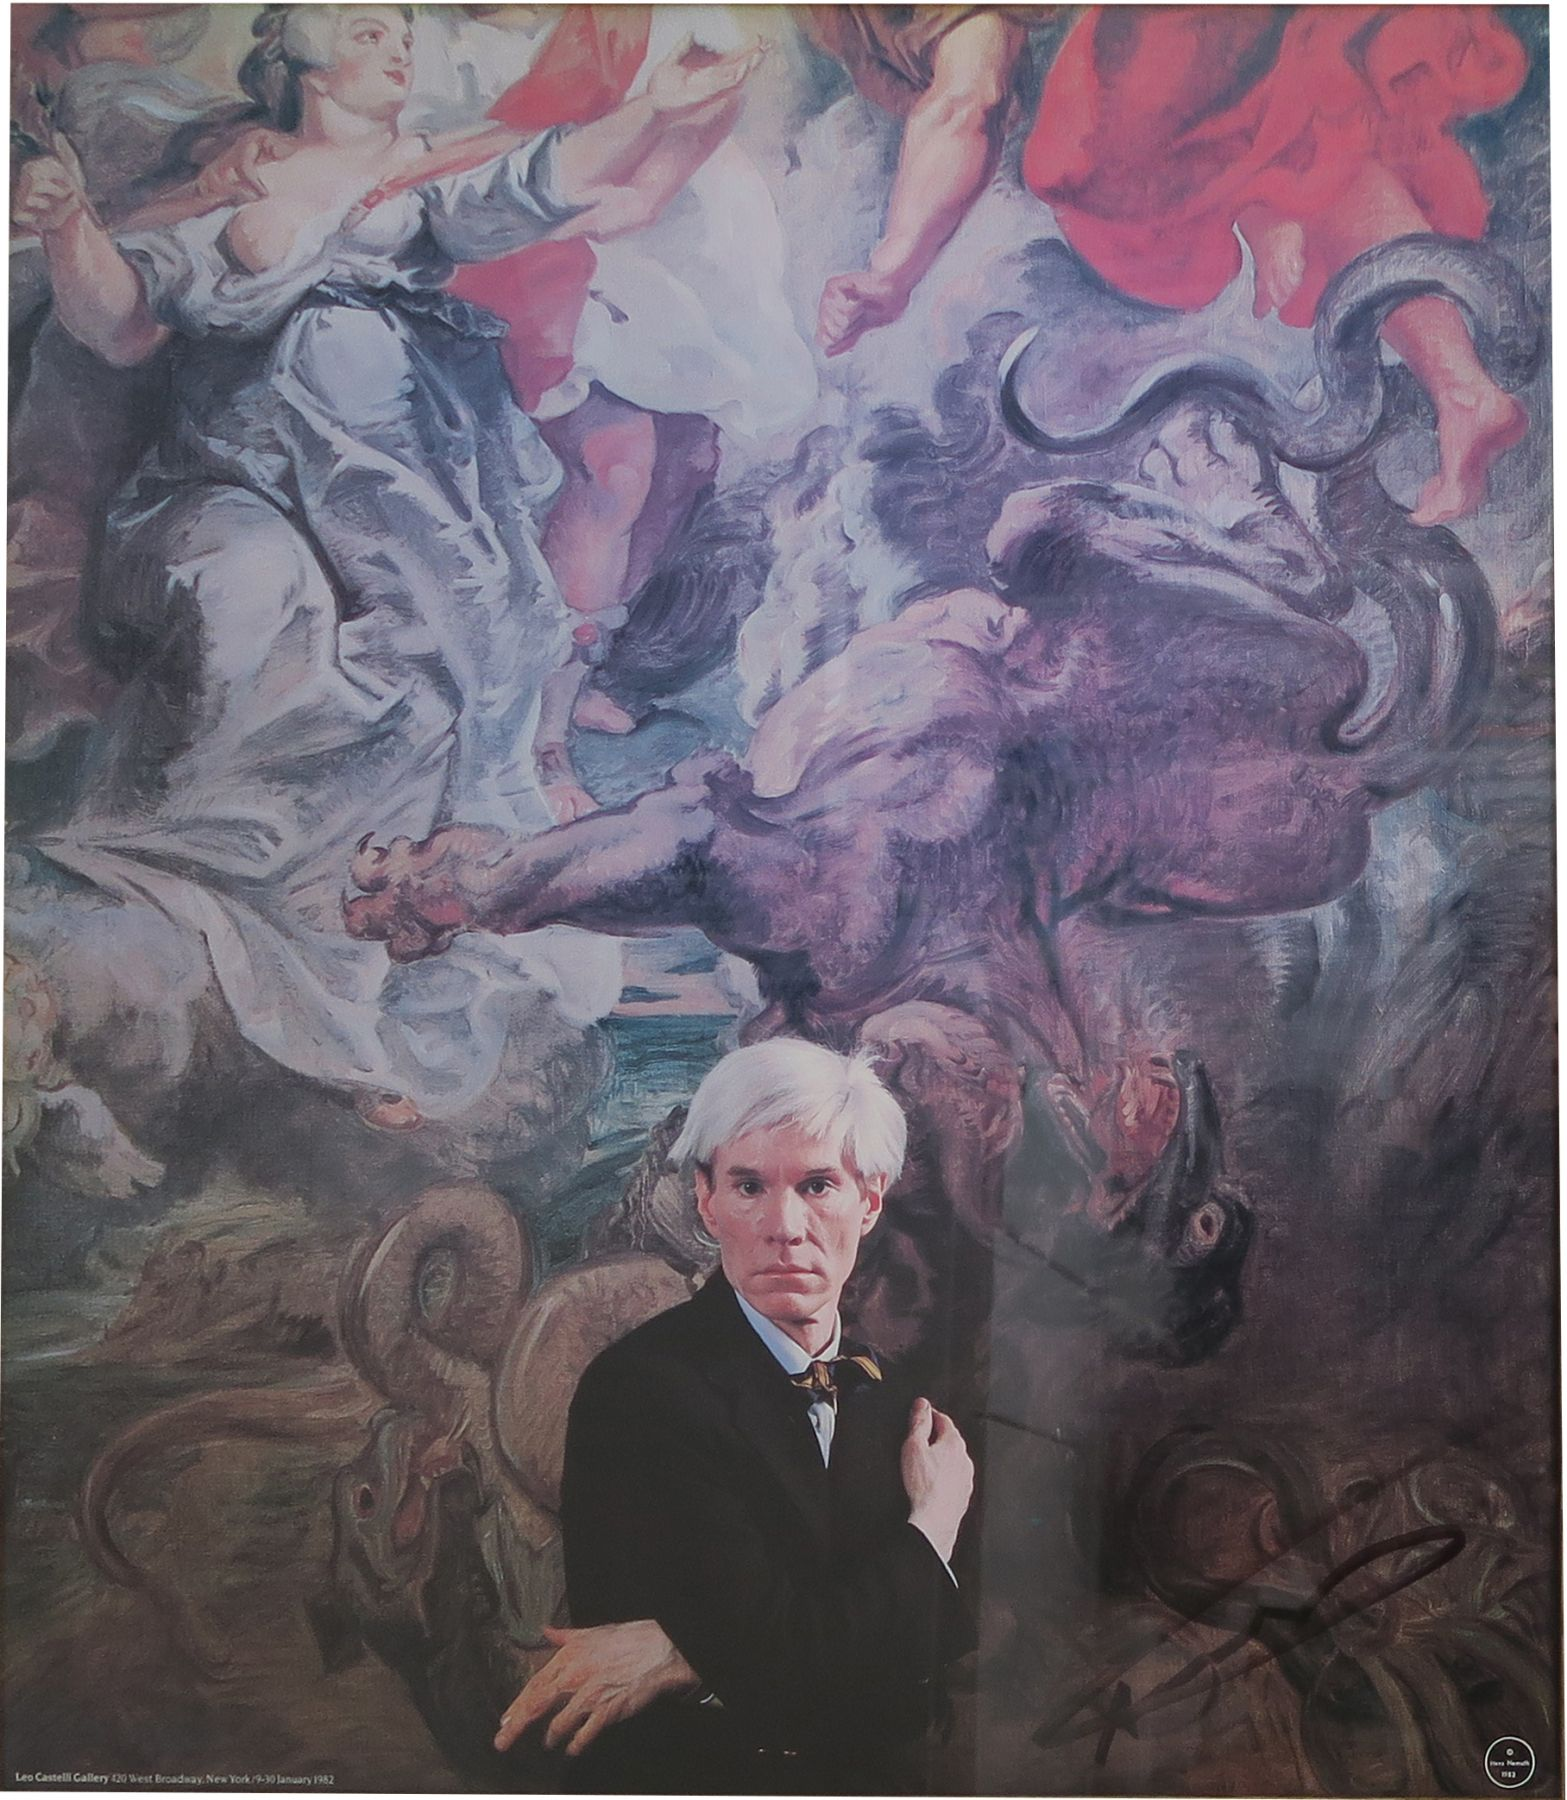 Hans Namuth, Portrait of Andy Warhol (exhibition poster signed by Warhol), Alternate Projects